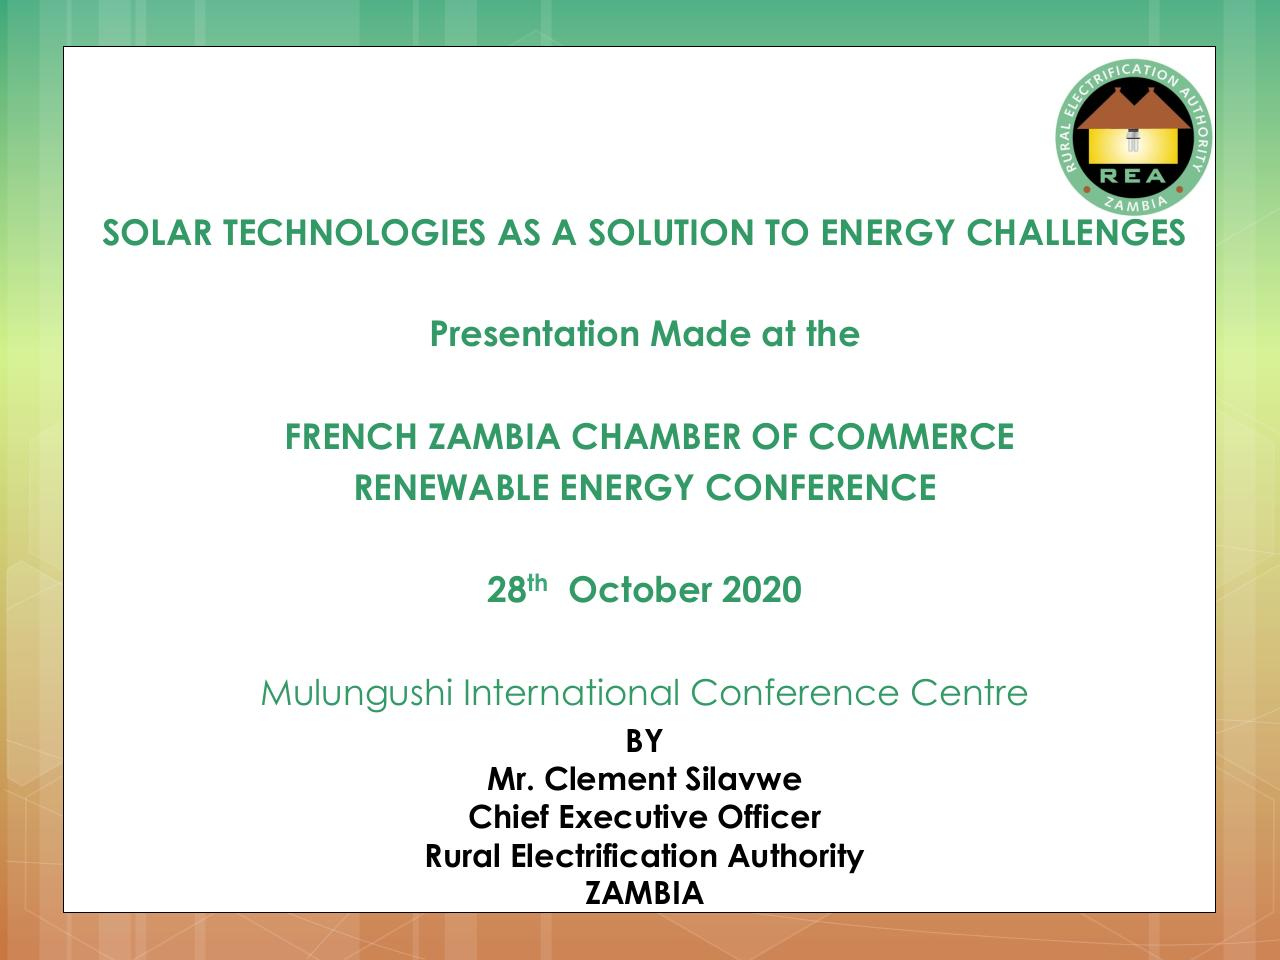 Aperçu du document Rea  on Solution to Energy Challenges_French Zambia Chamber of Commerce Renewable Energy Conference 27-28th October 2020_SFEA.pdf - page 1/15